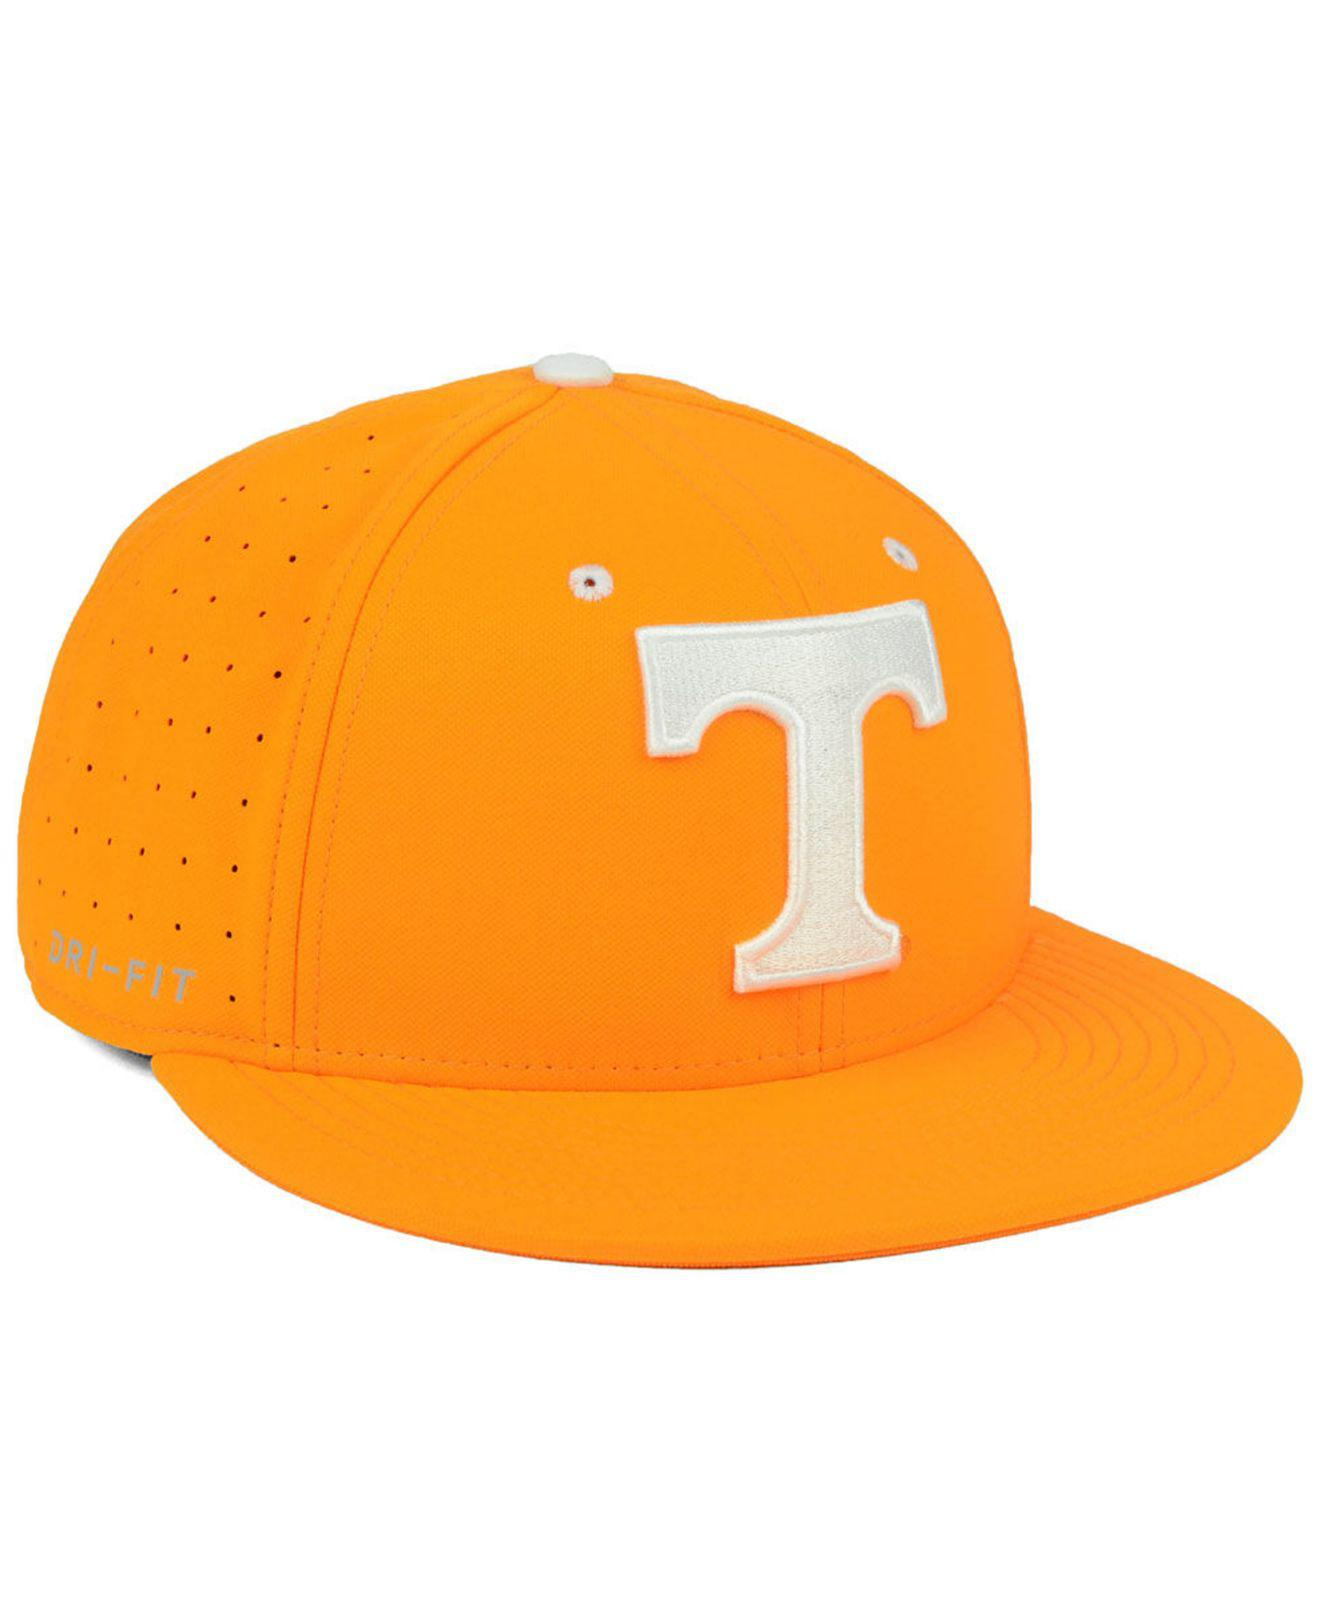 save off bbc72 817ea ... wholesale nike orange tennessee volunteers aerobill true fitted baseball  cap for men lyst. view fullscreen